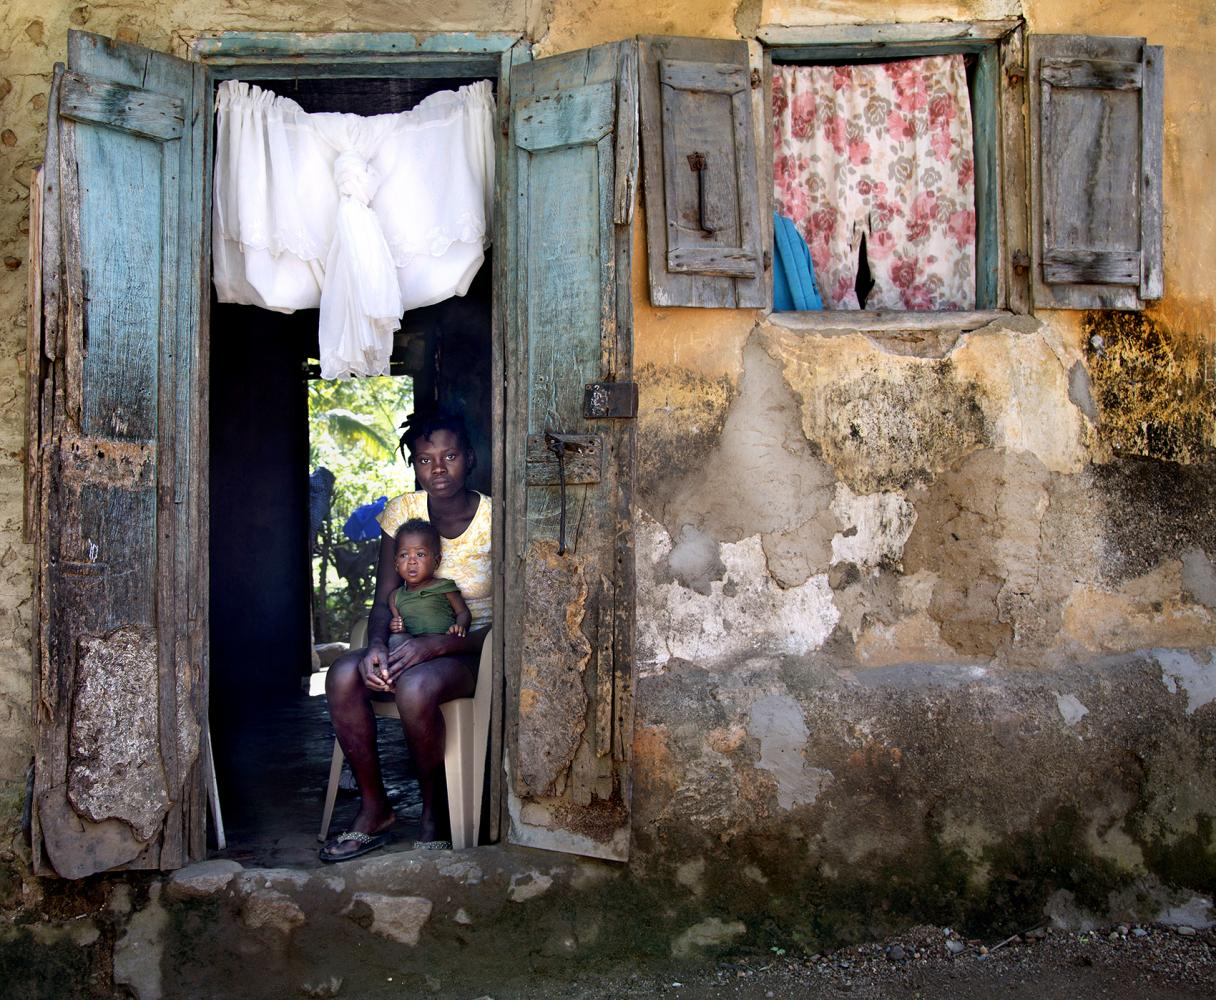 A woman and her baby sit in the doorway of their home in Milot, Haiti.